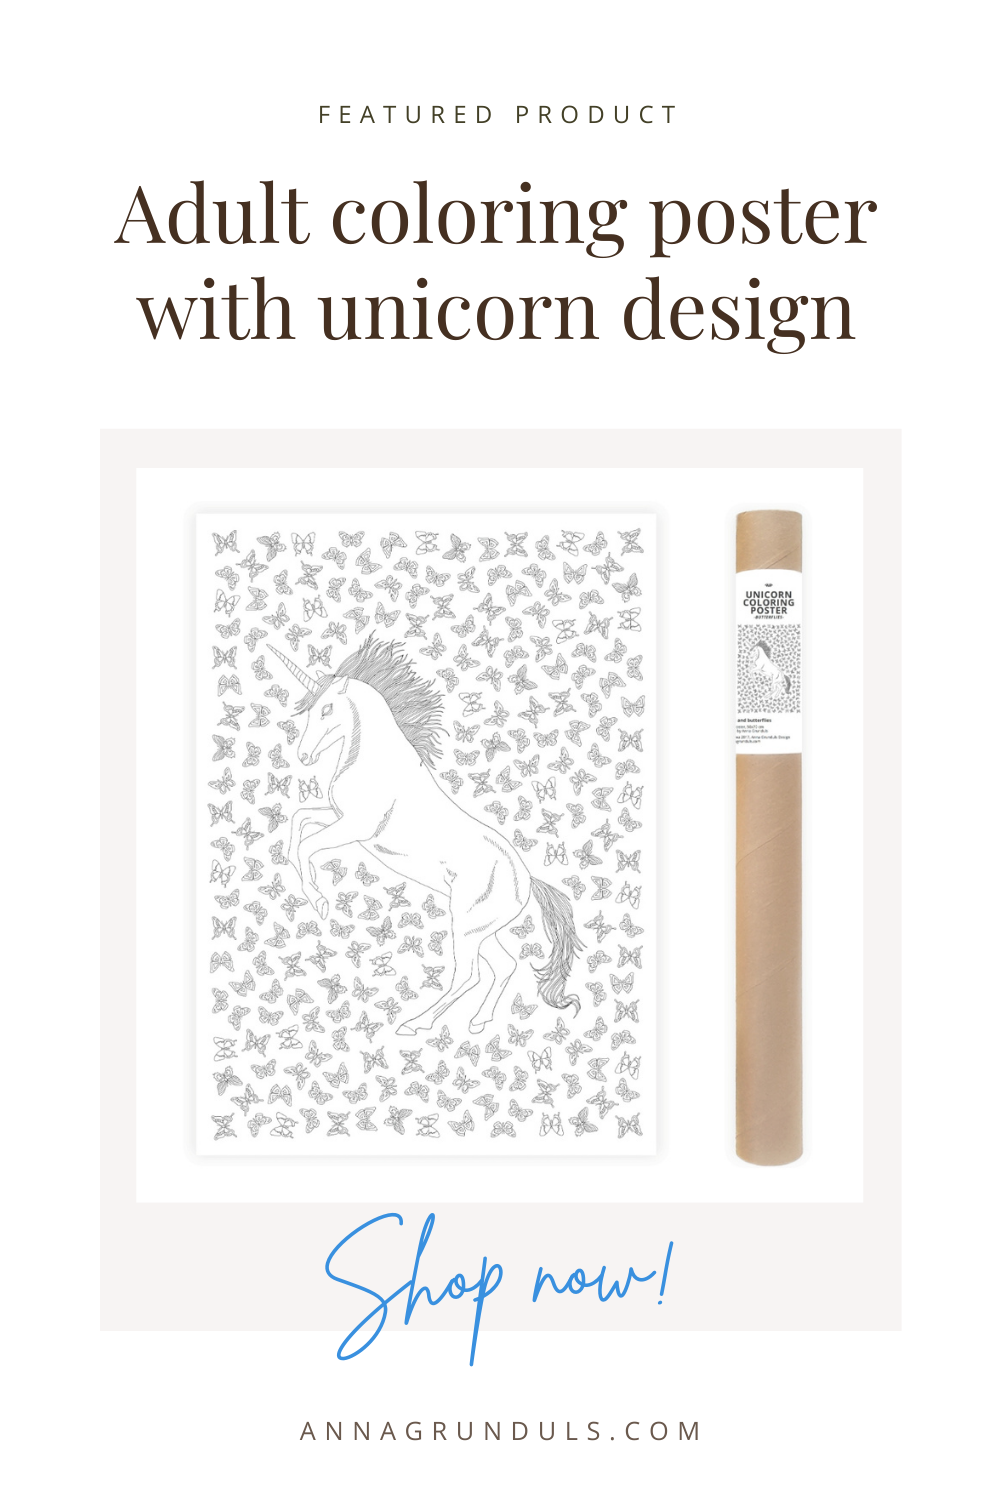 unicorn poster for adult coloring pinterest pin